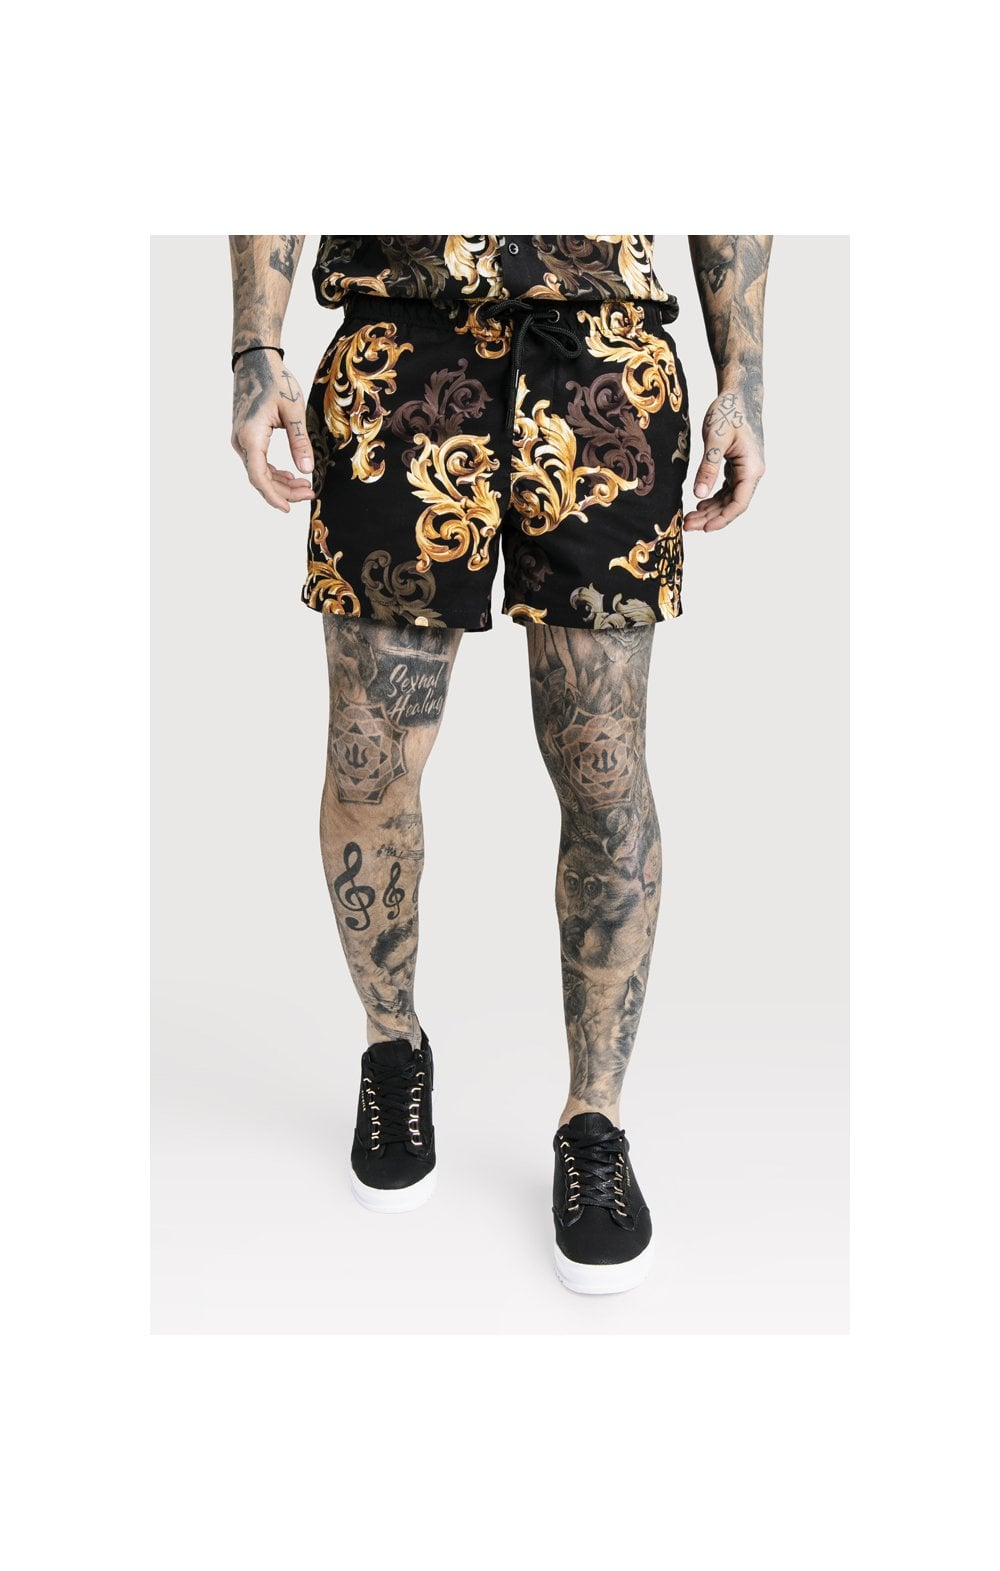 SikSilk x Dani Alves Swim Shorts - Black & Gold (1)